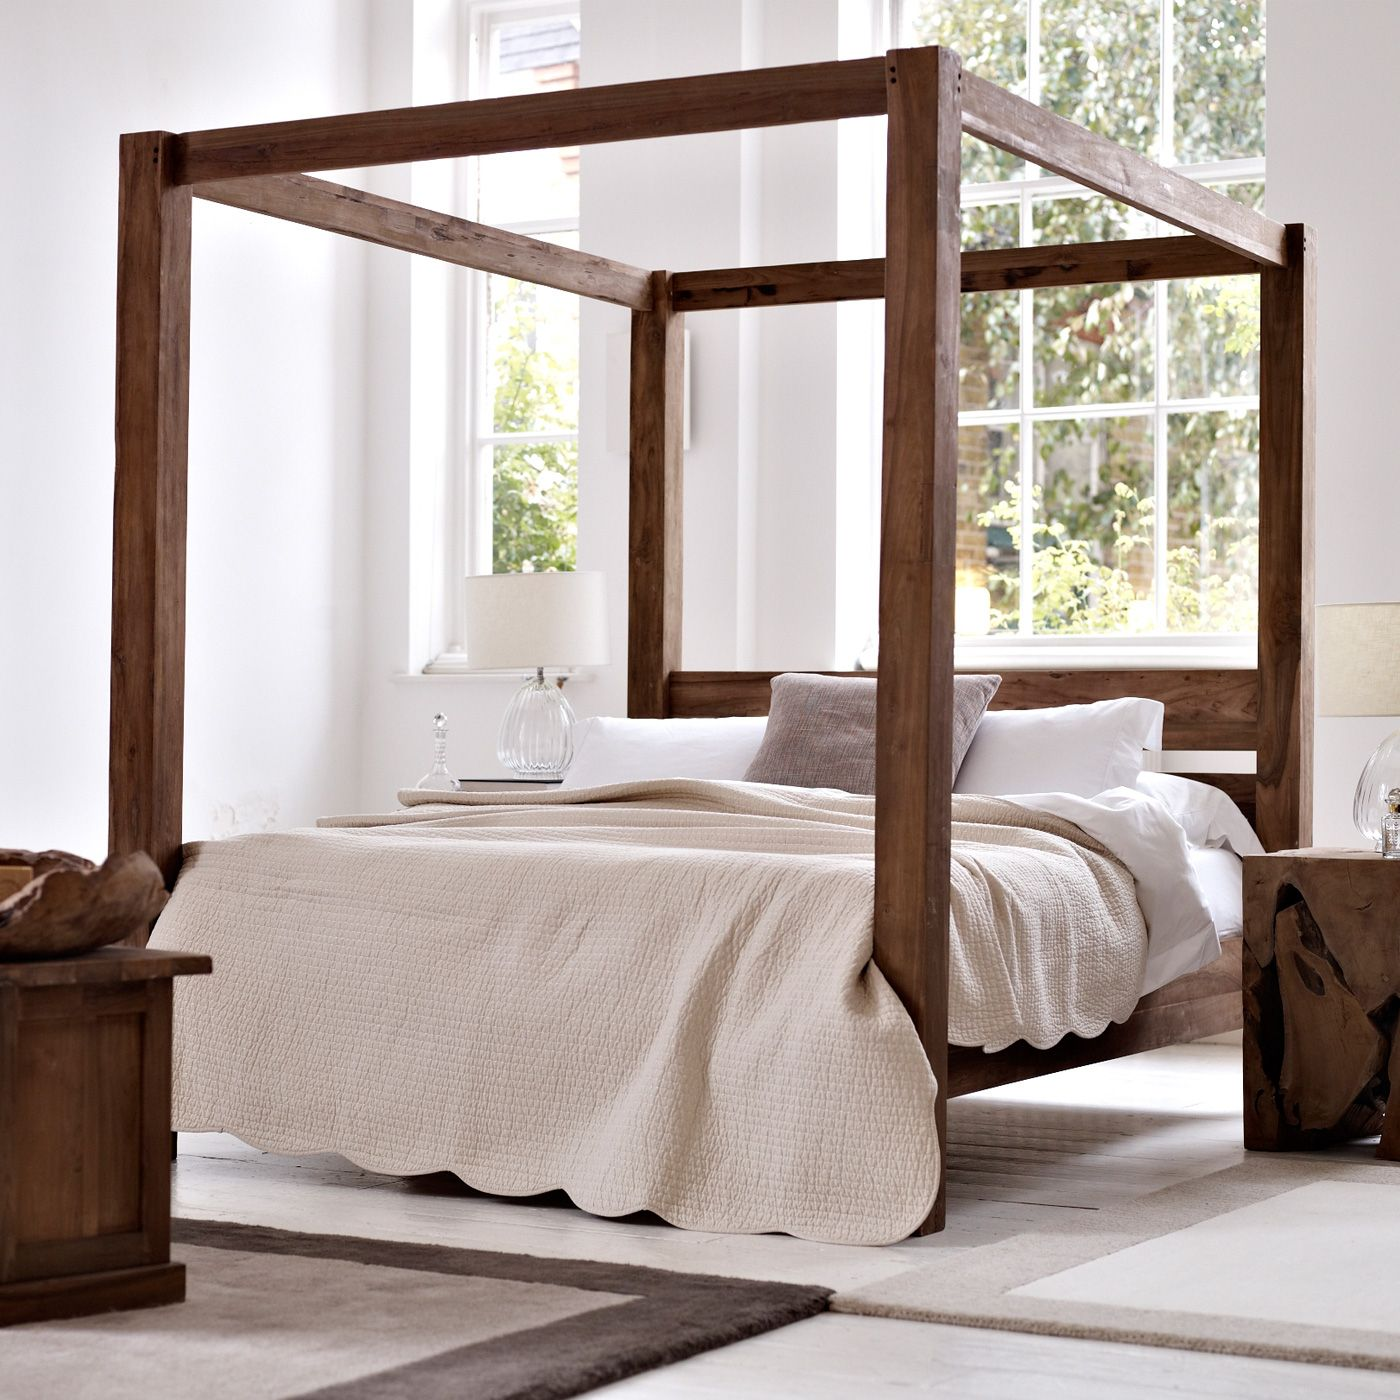 4 Post Bed